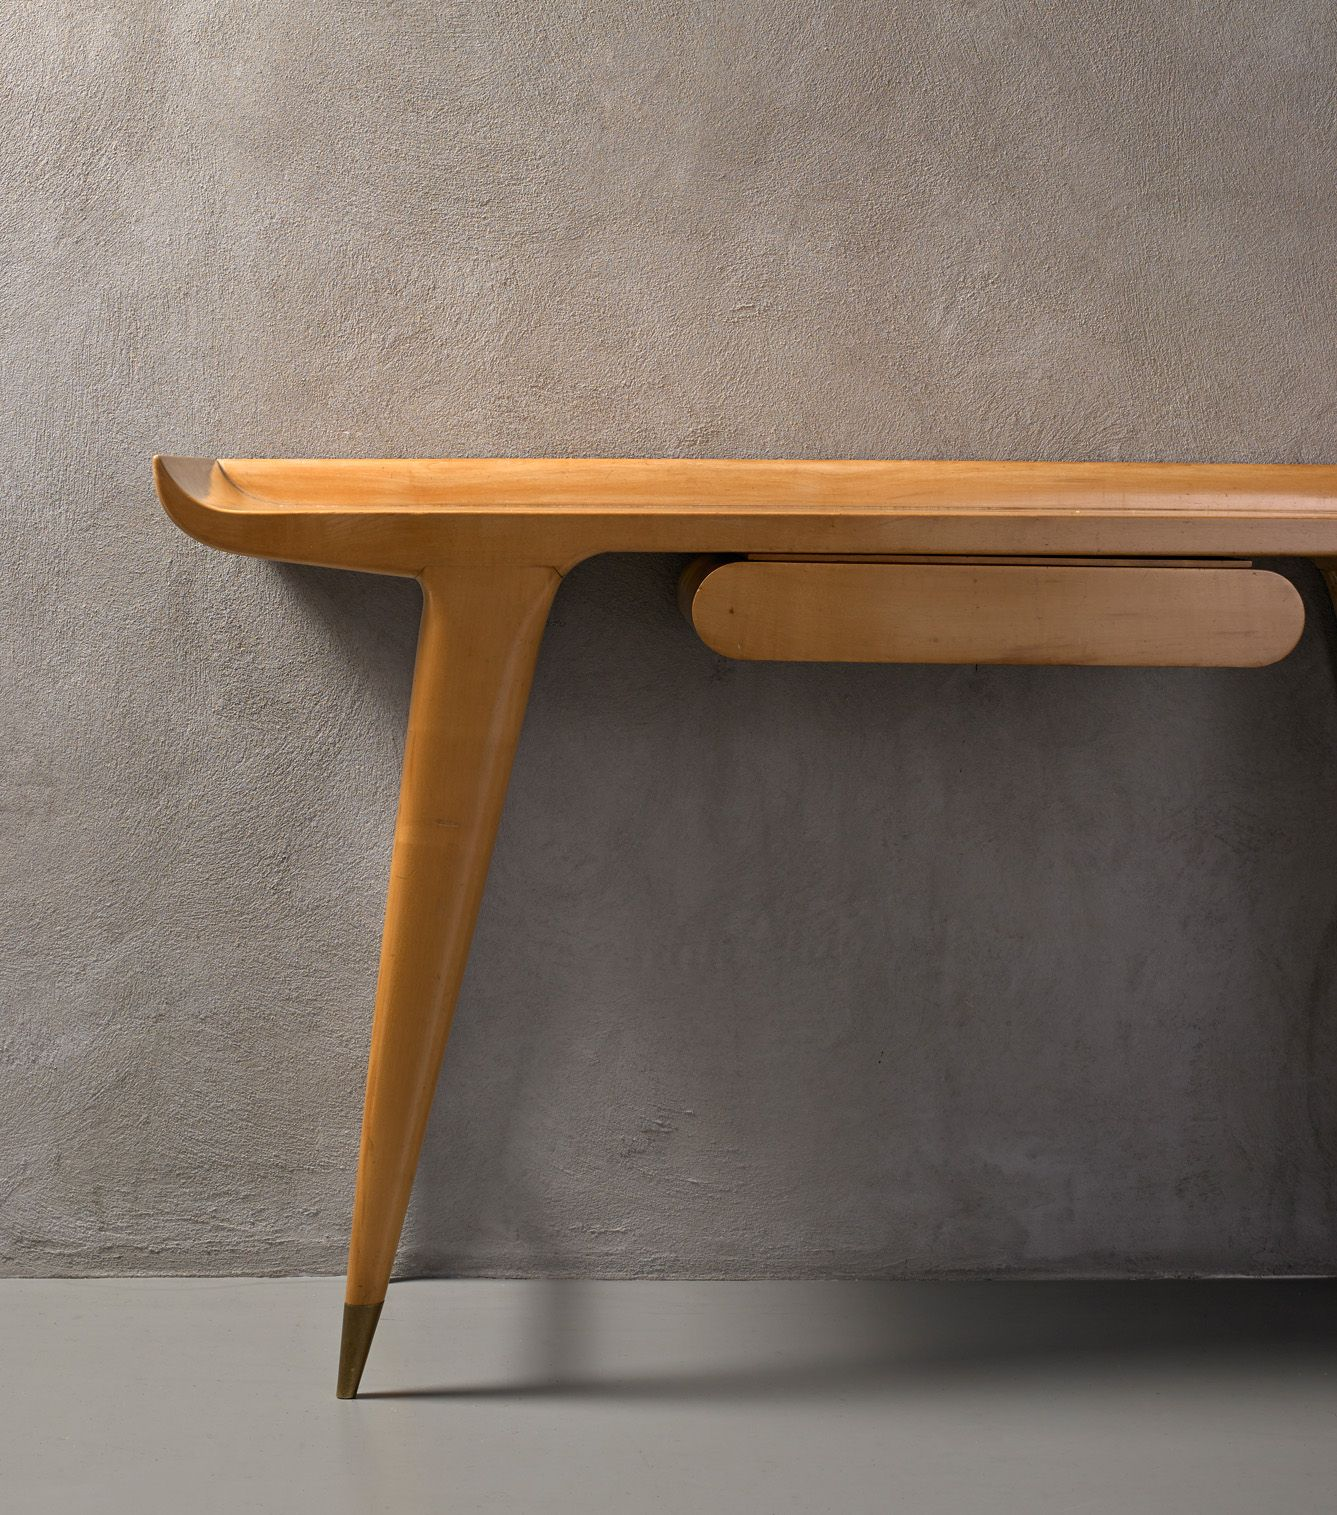 Consolle by gio ponti 1948 m veis pinte for Mobili design italiani